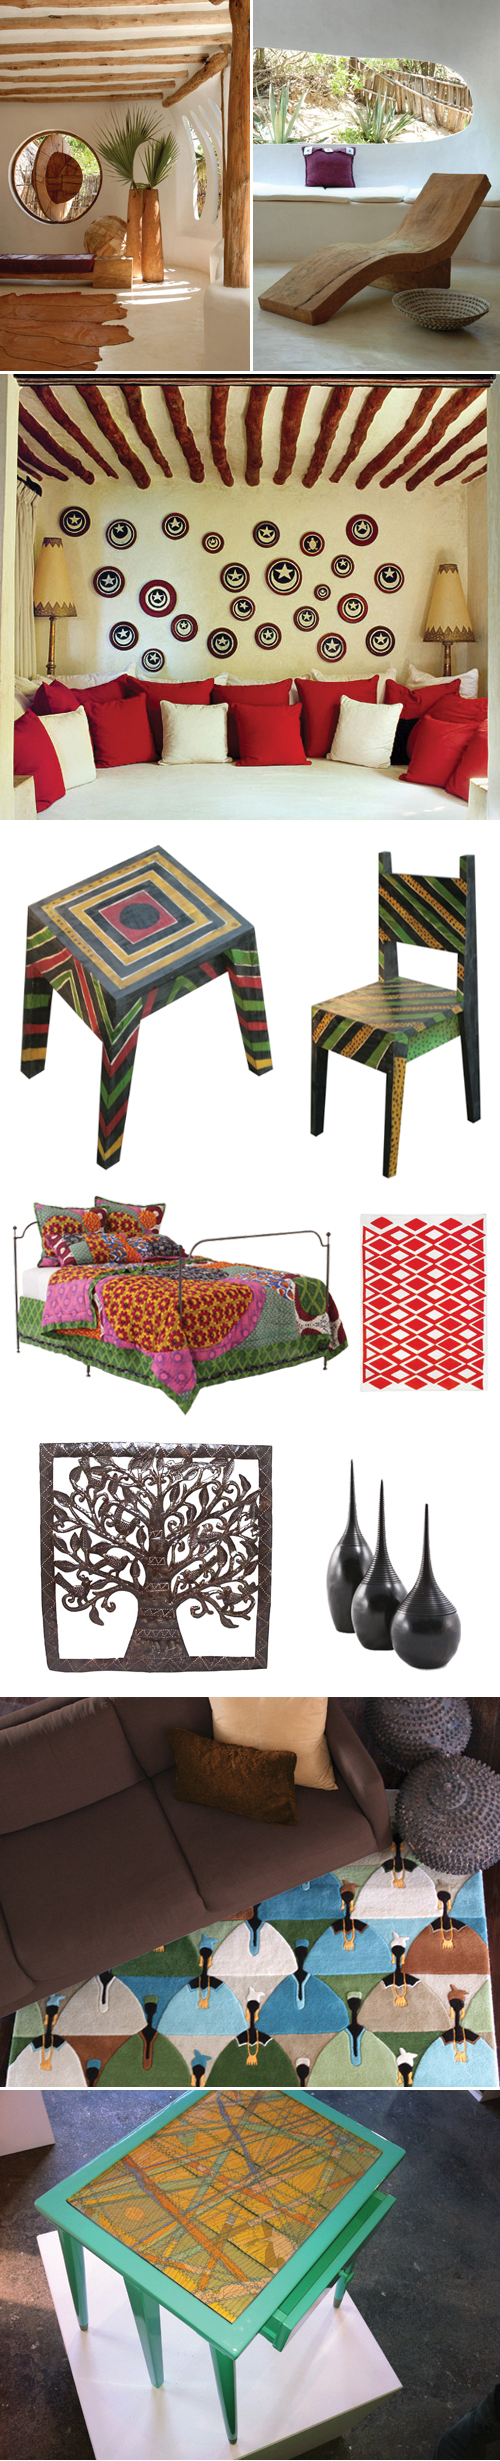 The-best-of-2011-interior-furniture-and-home-design-Afri-love